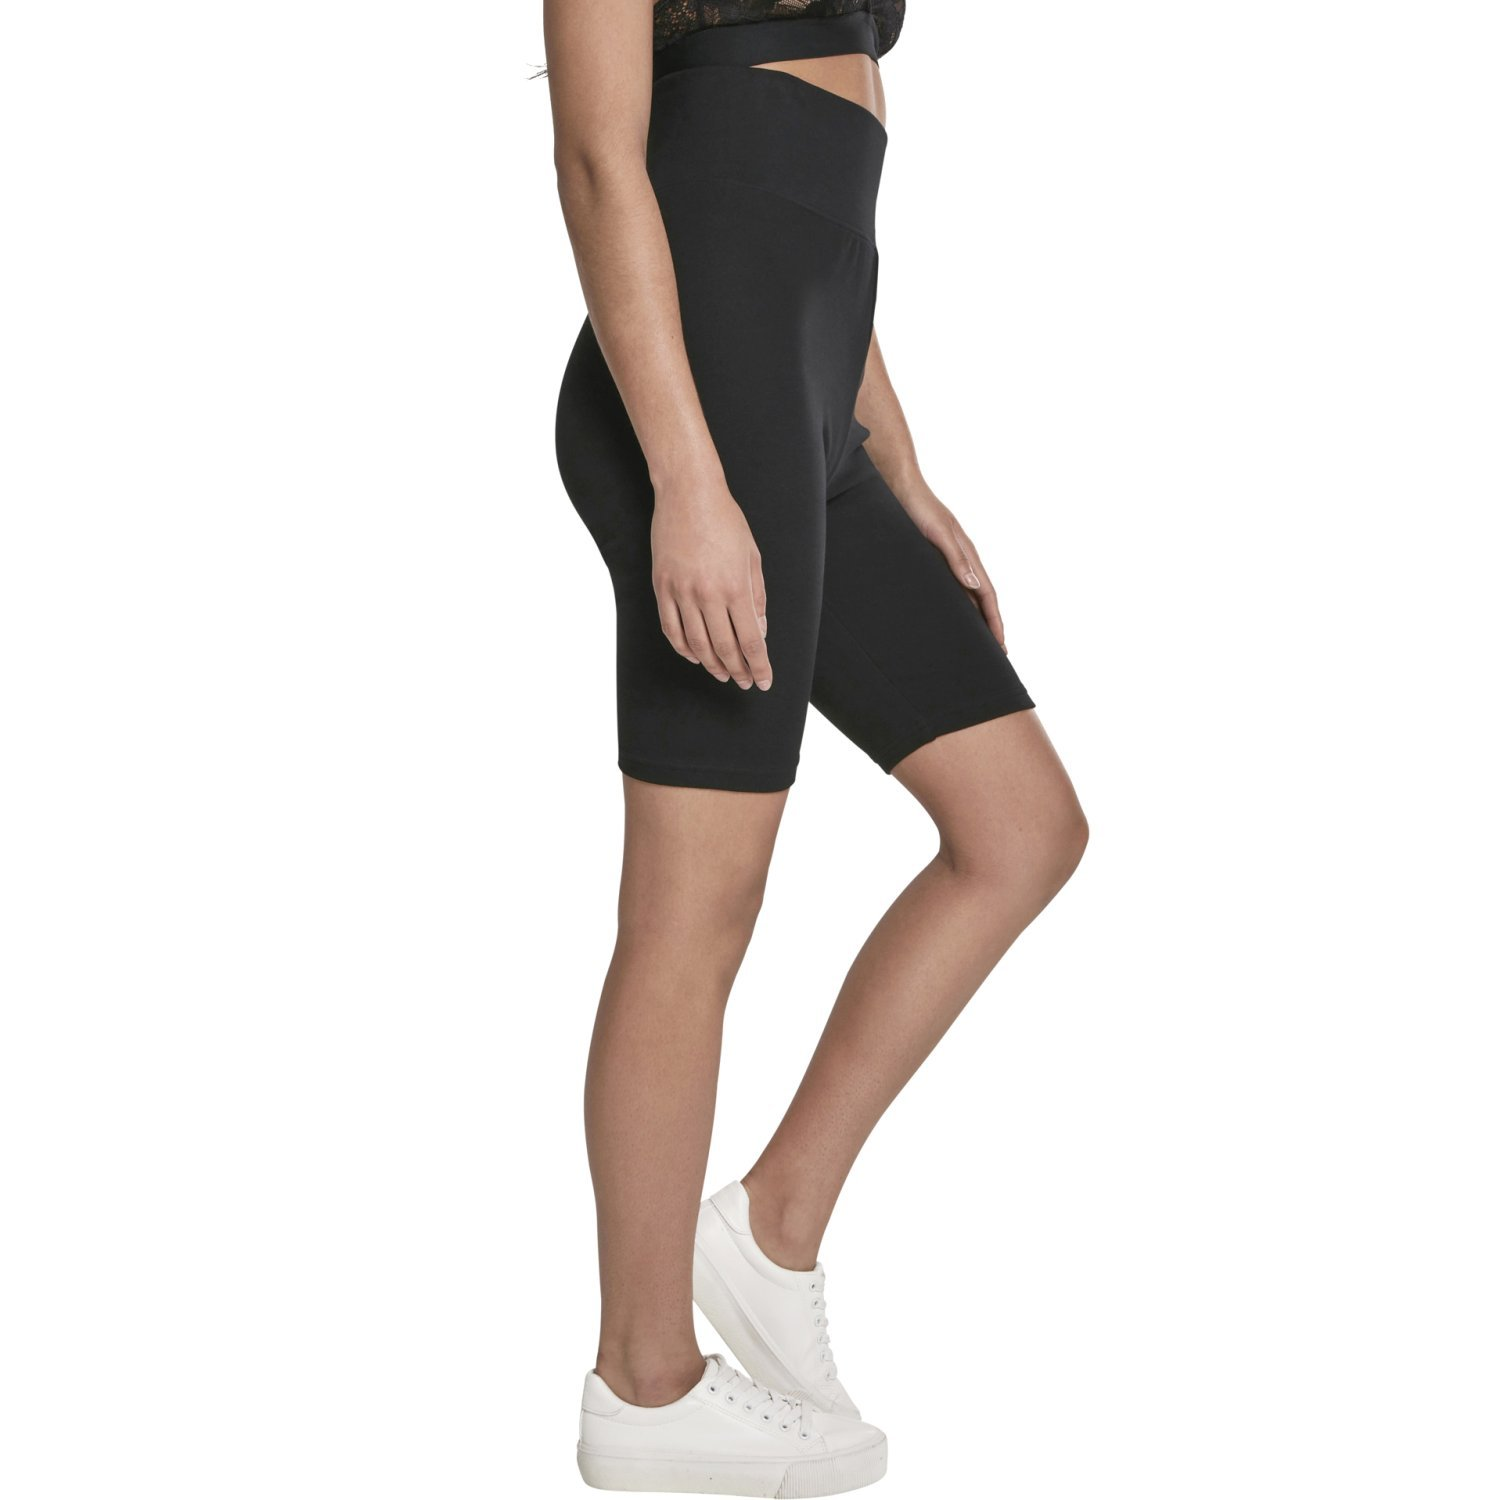 Best Bike Shorts For Women that are Stylish & Comfortable